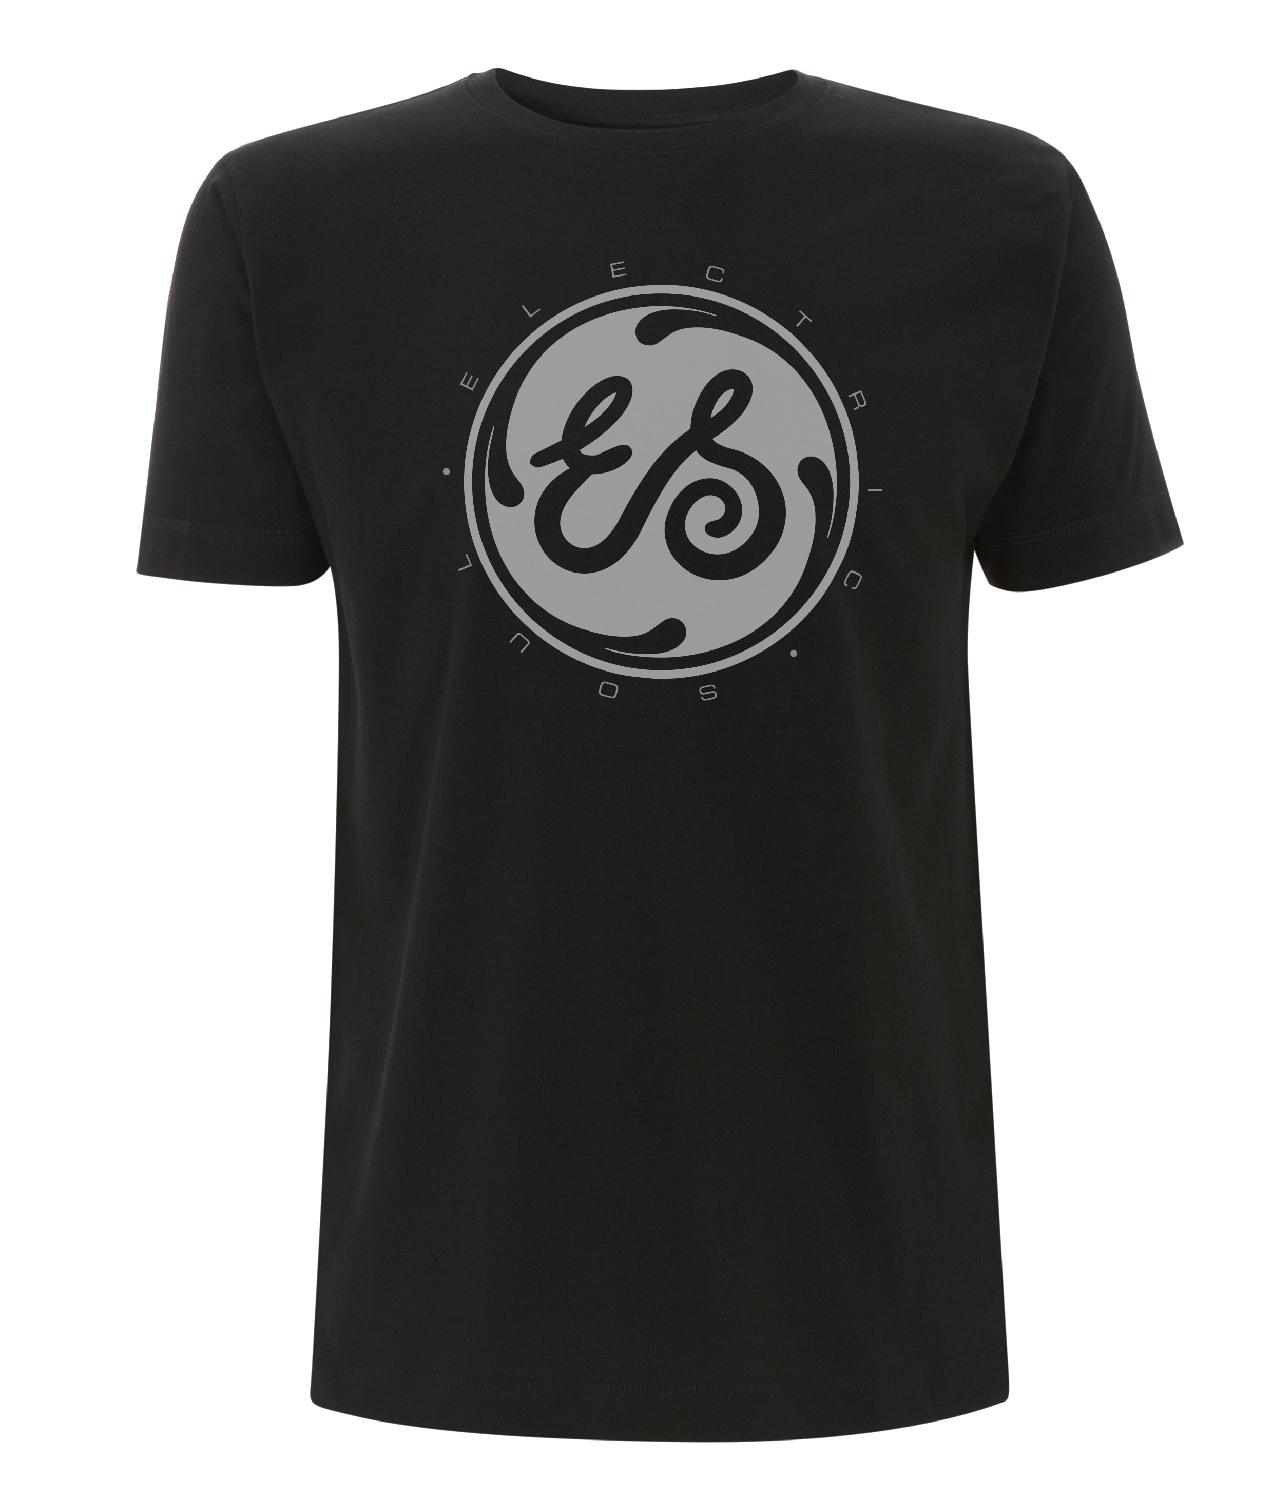 Marlon Roudette Electric Soul Logo Mens black T-Shirt black